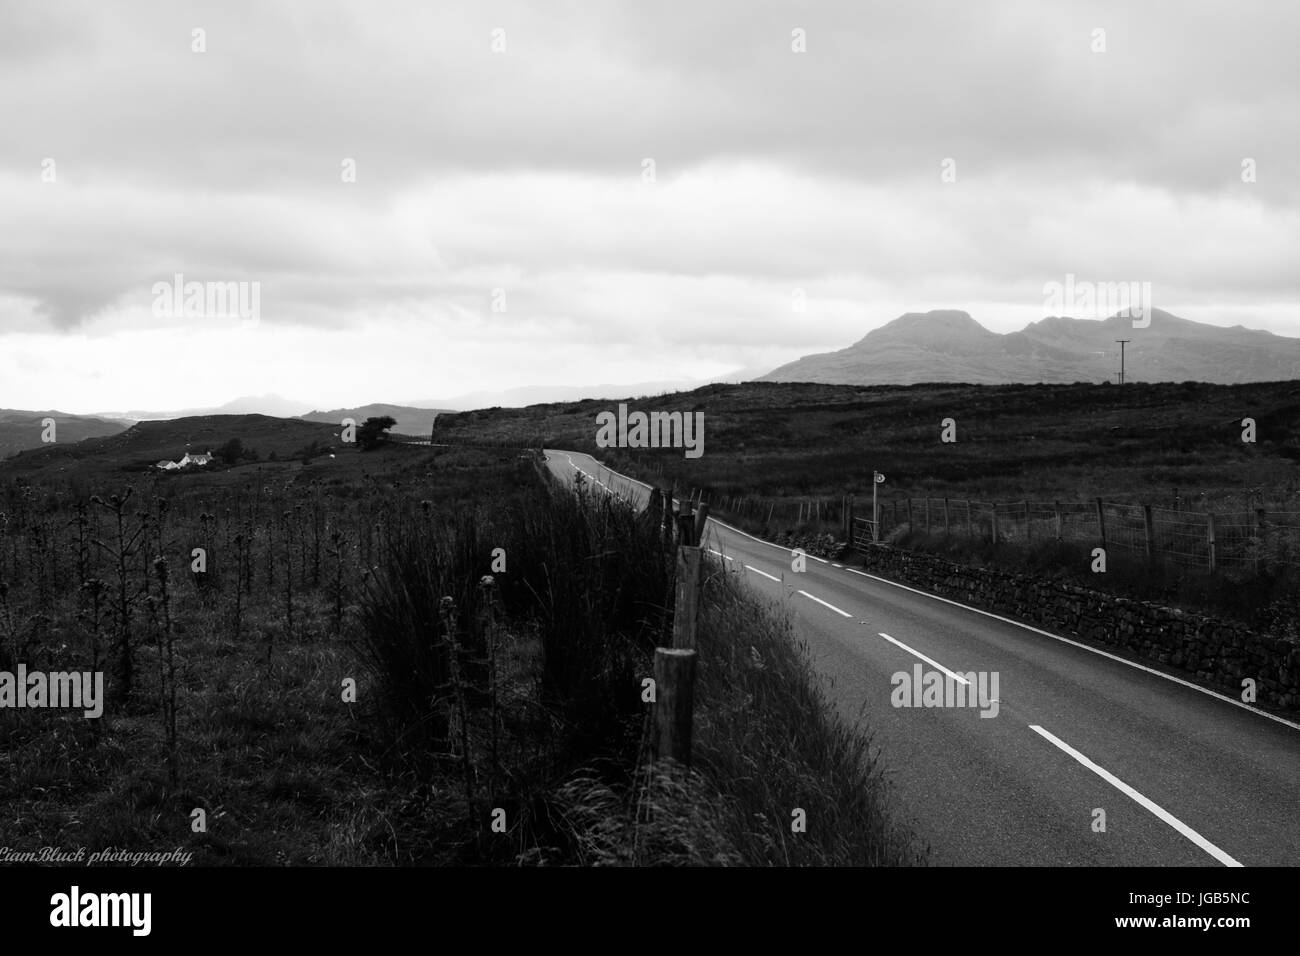 black and white welsh landscape photography - Stock Image